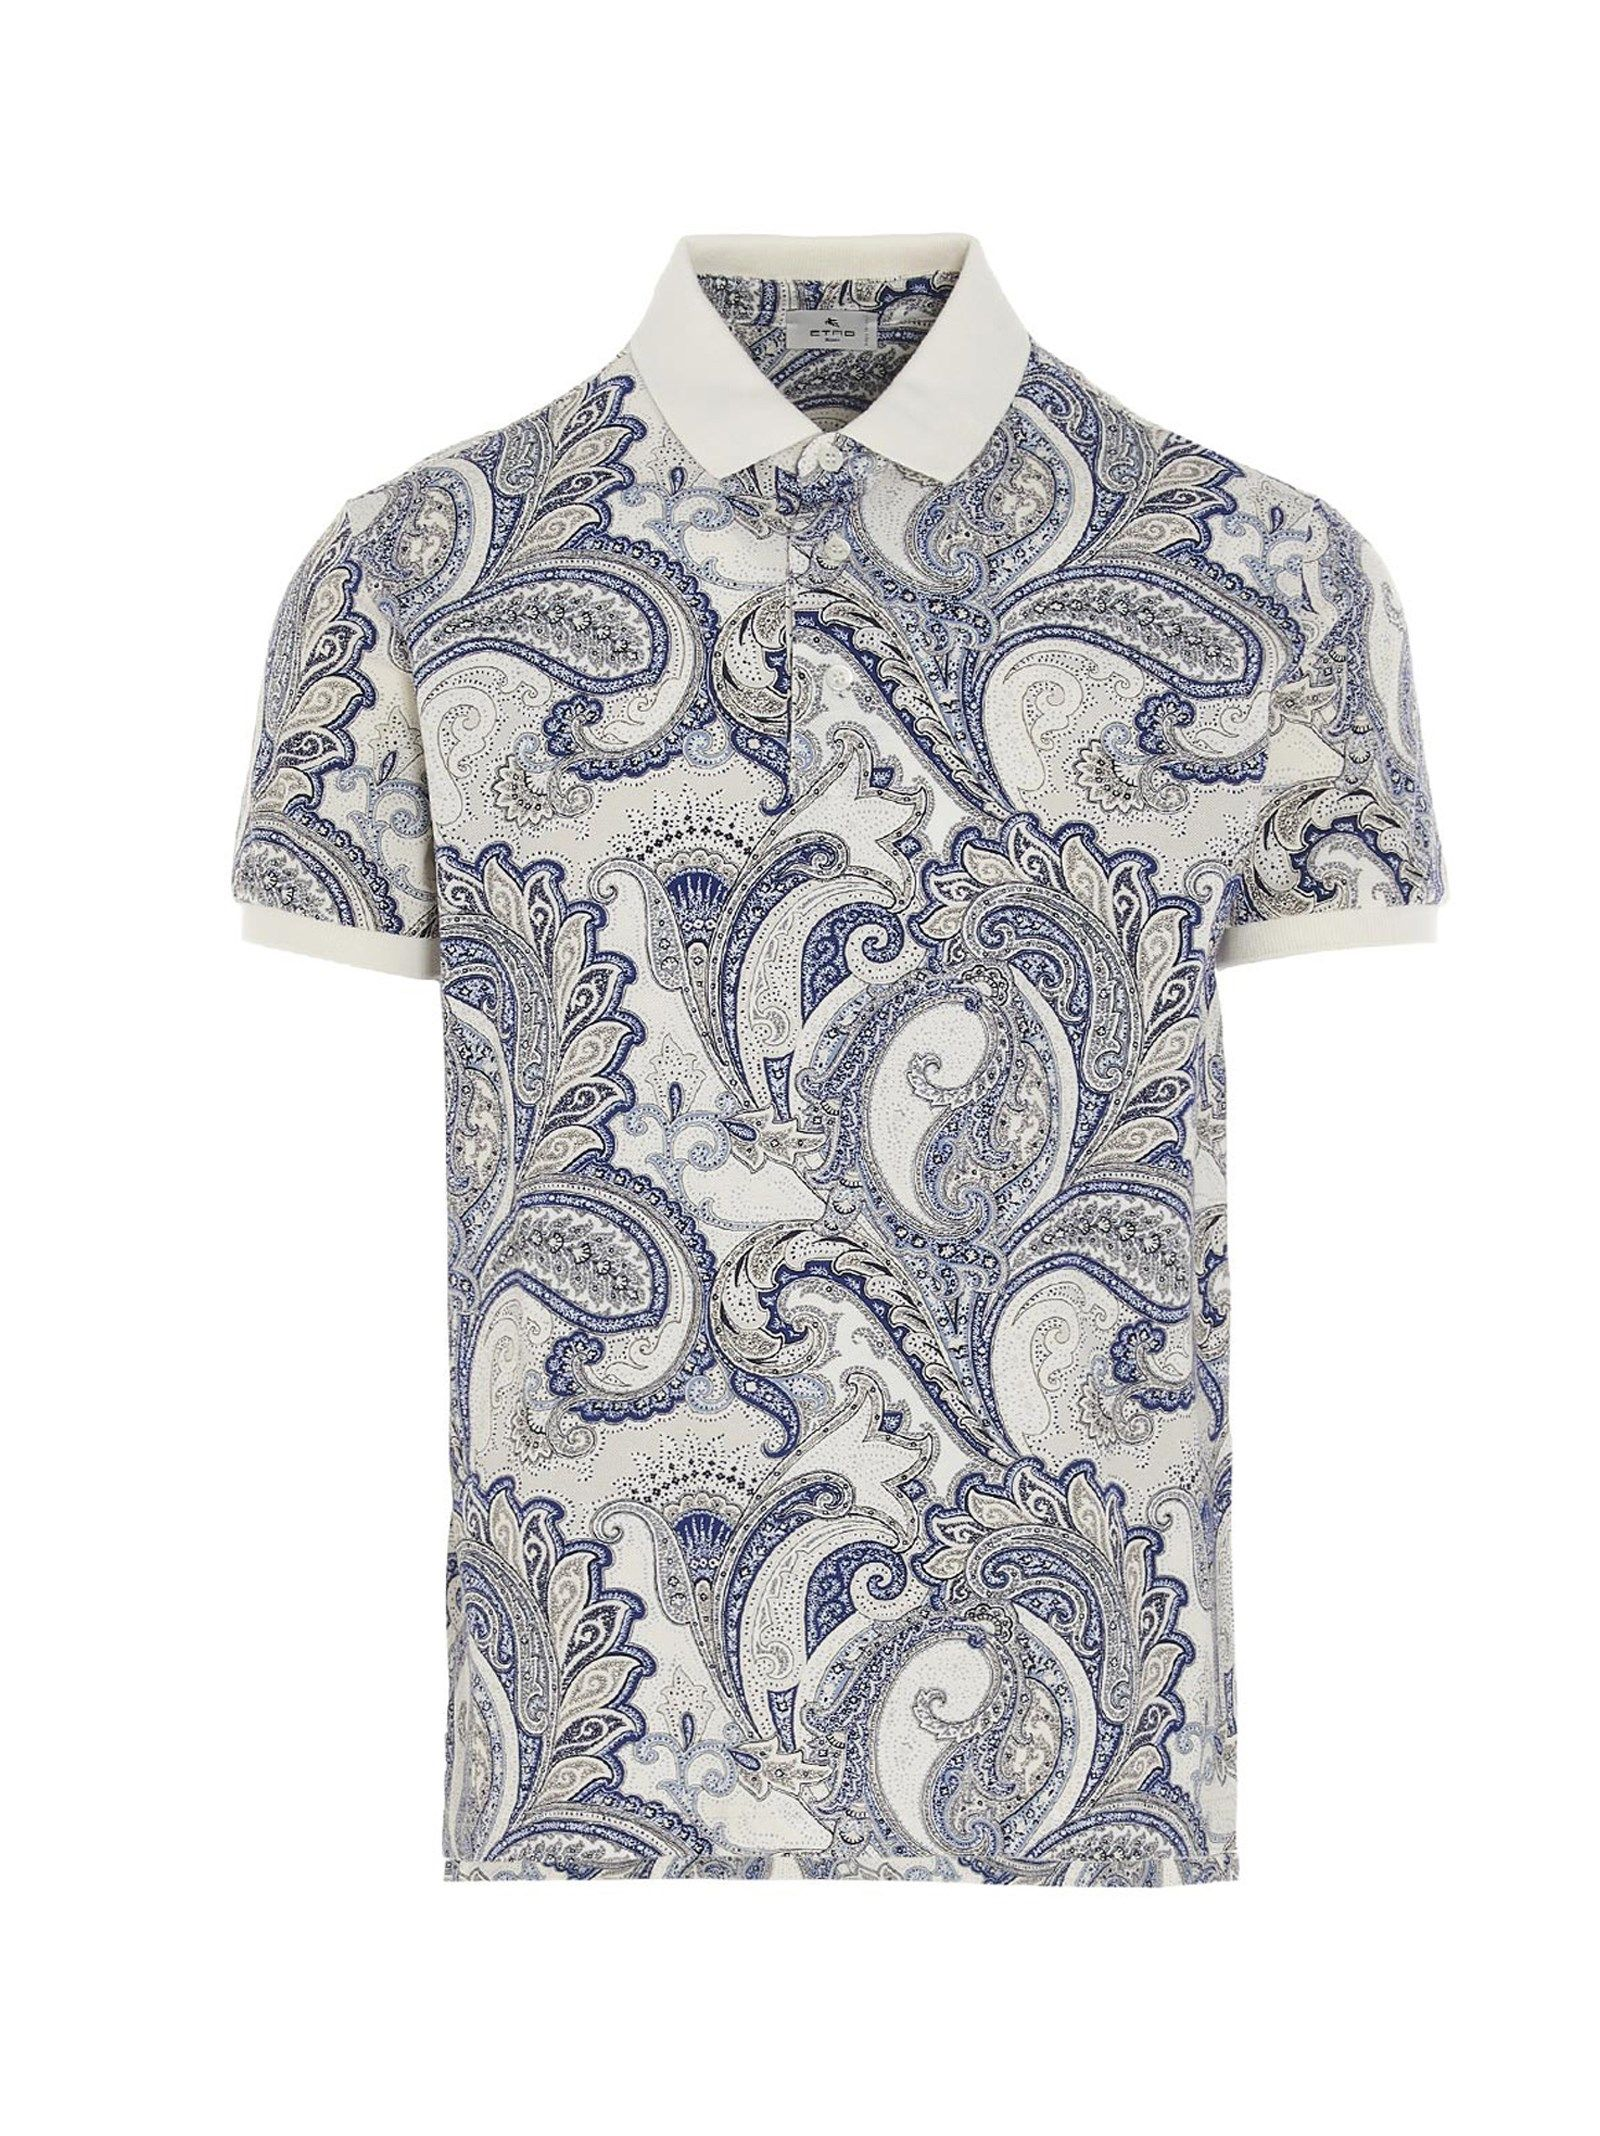 Etro Cottons ETRO MEN'S 1Y8004080251 WHITE OTHER MATERIALS POLO SHIRT